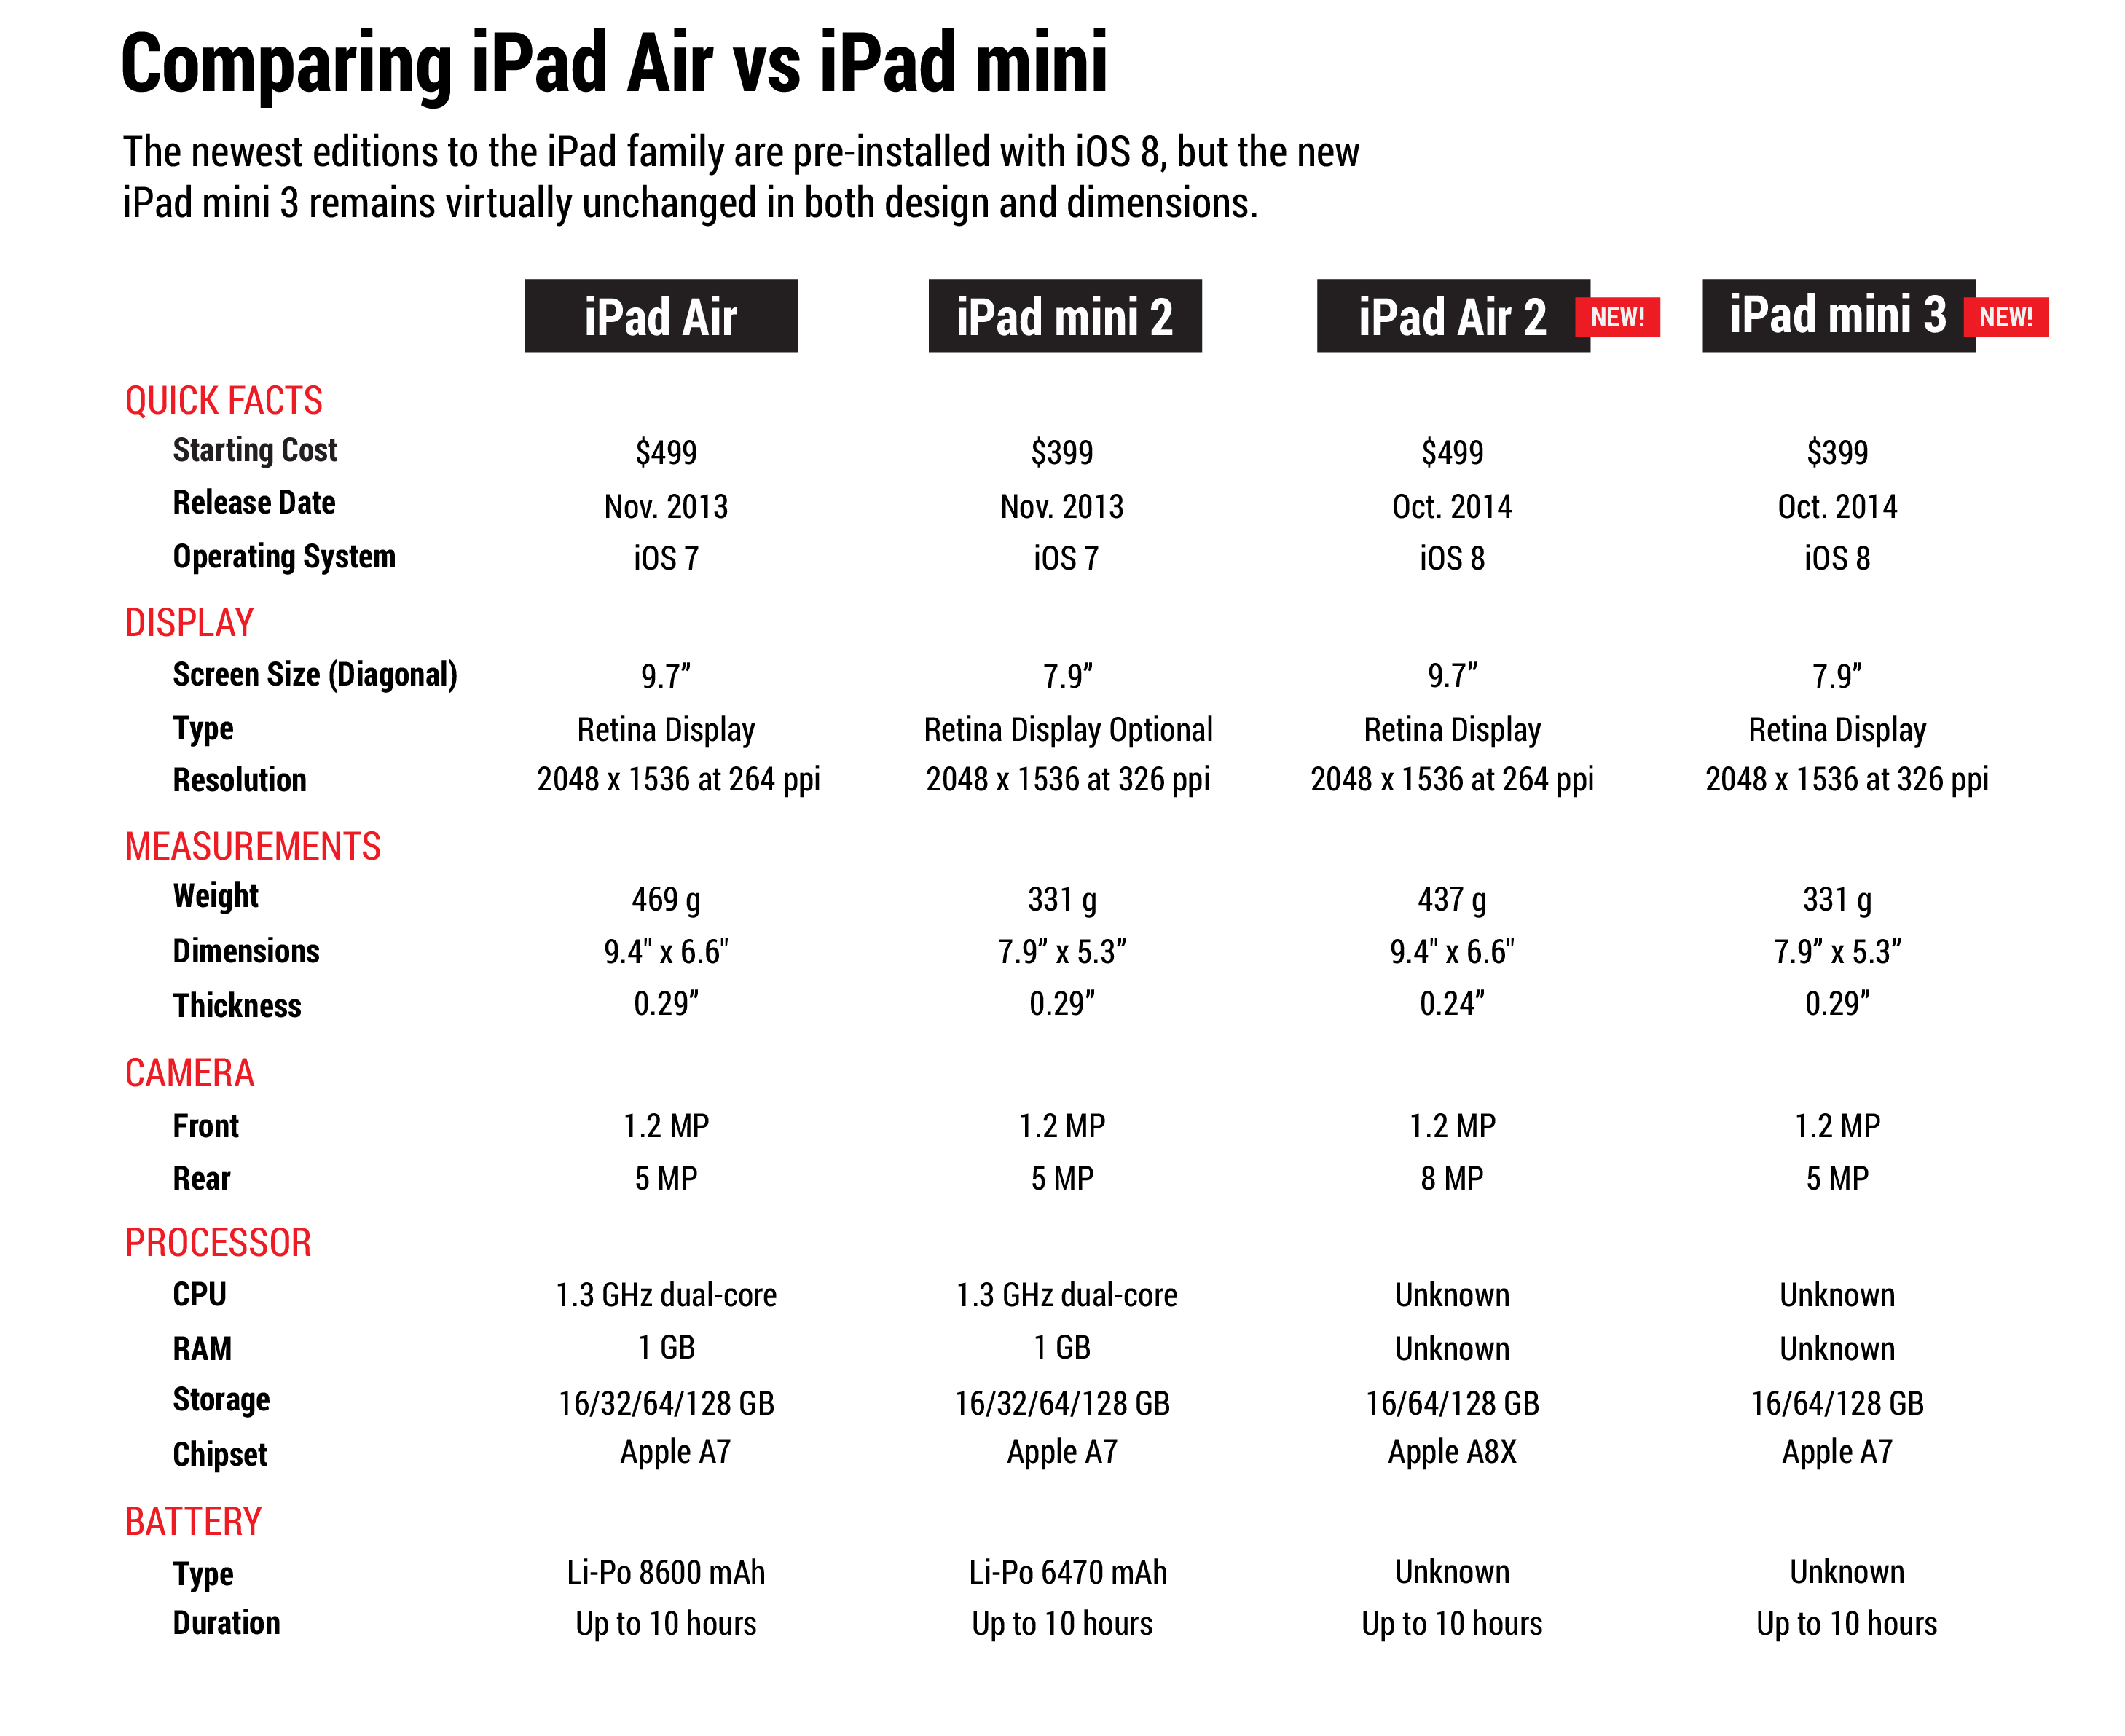 ipad_air_vs_ipad_mini-01